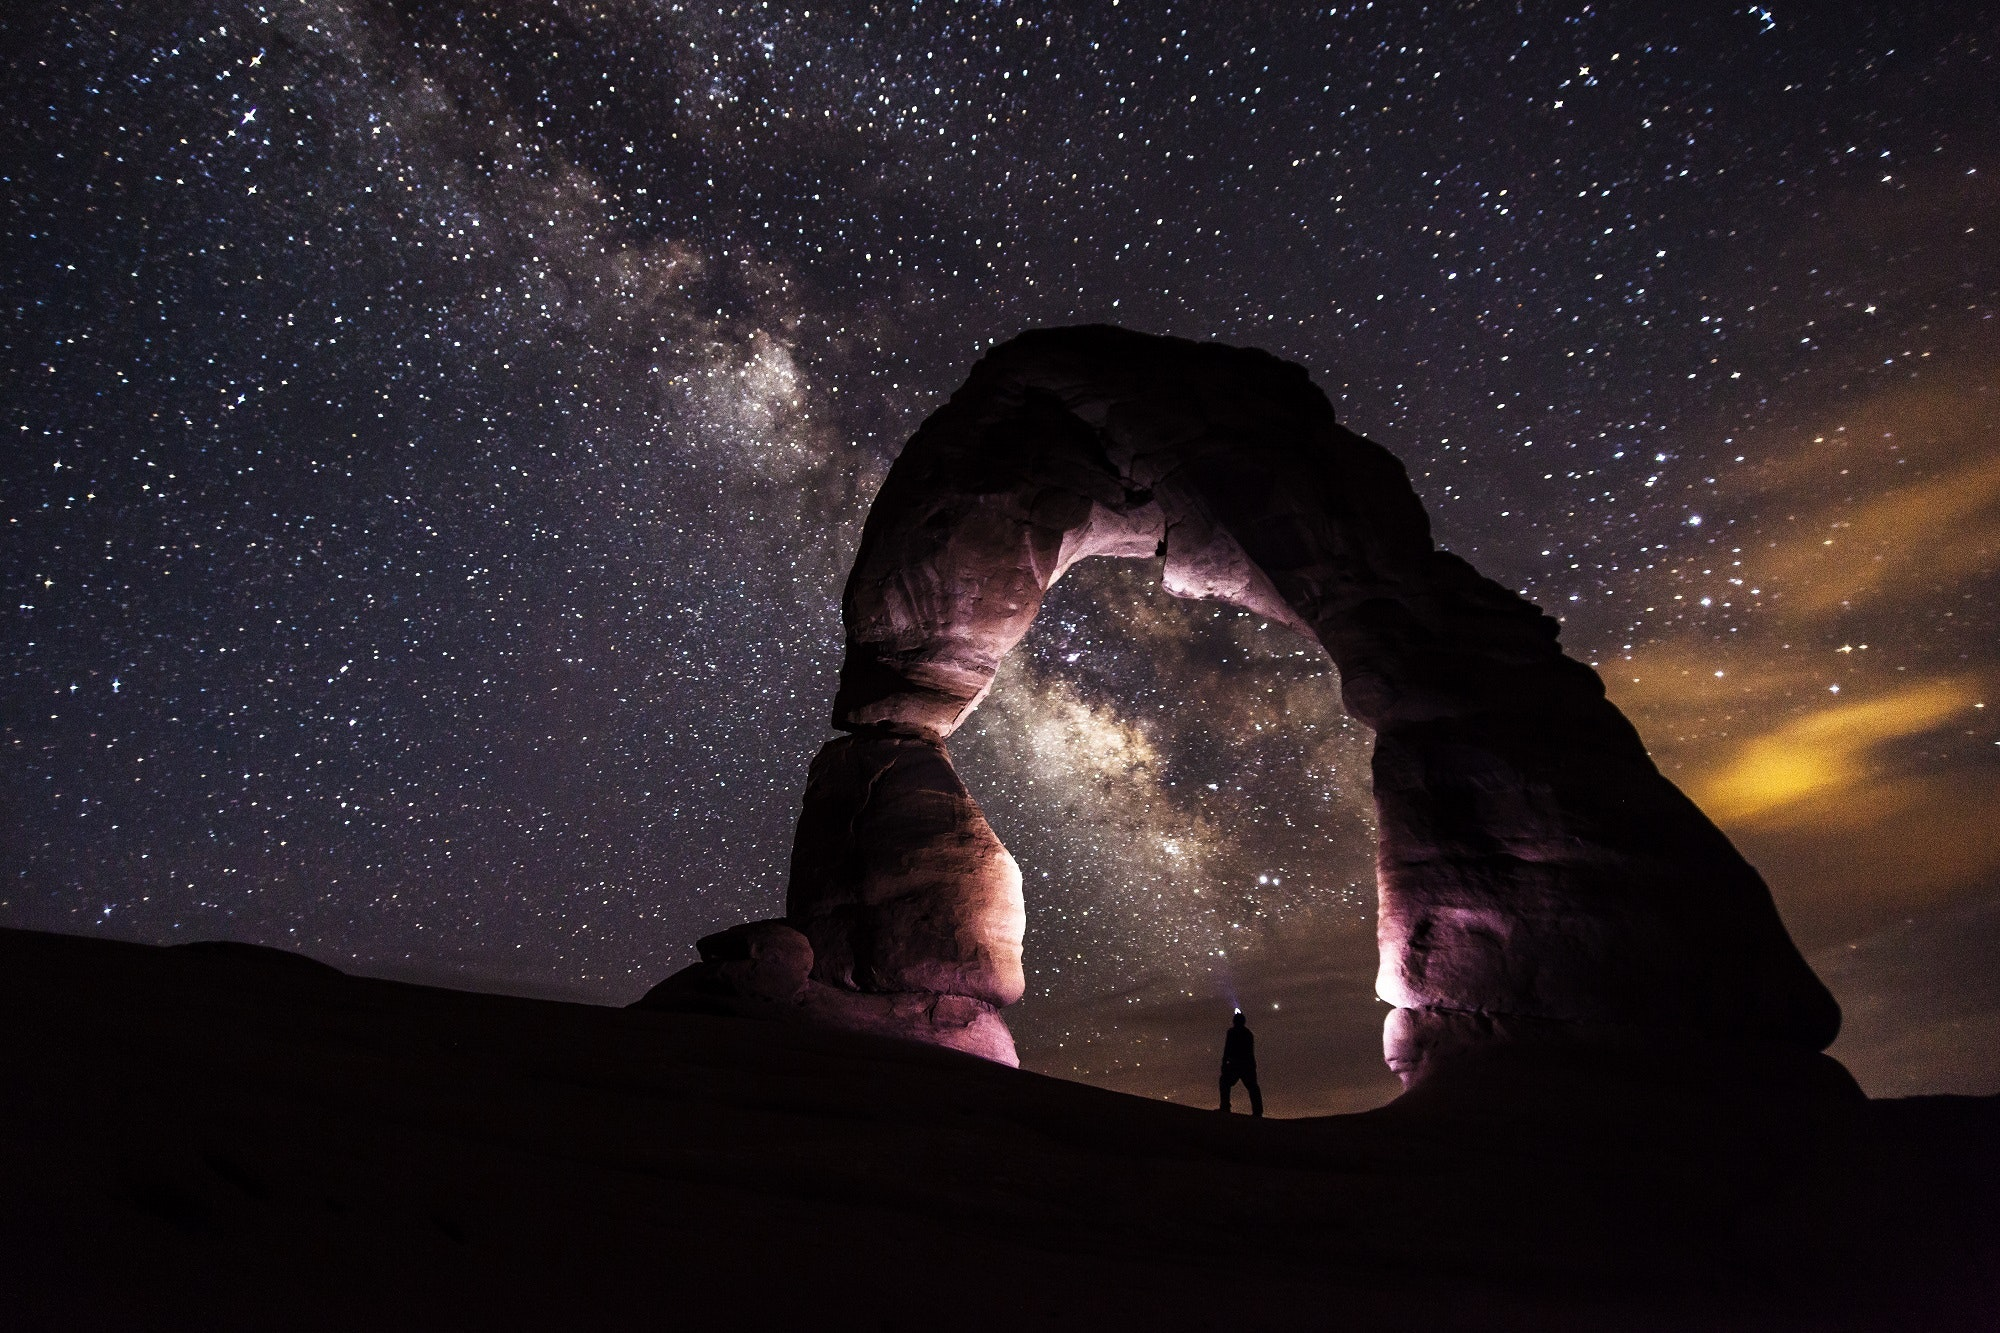 A photo of an arch with a sky full with stars at the background.